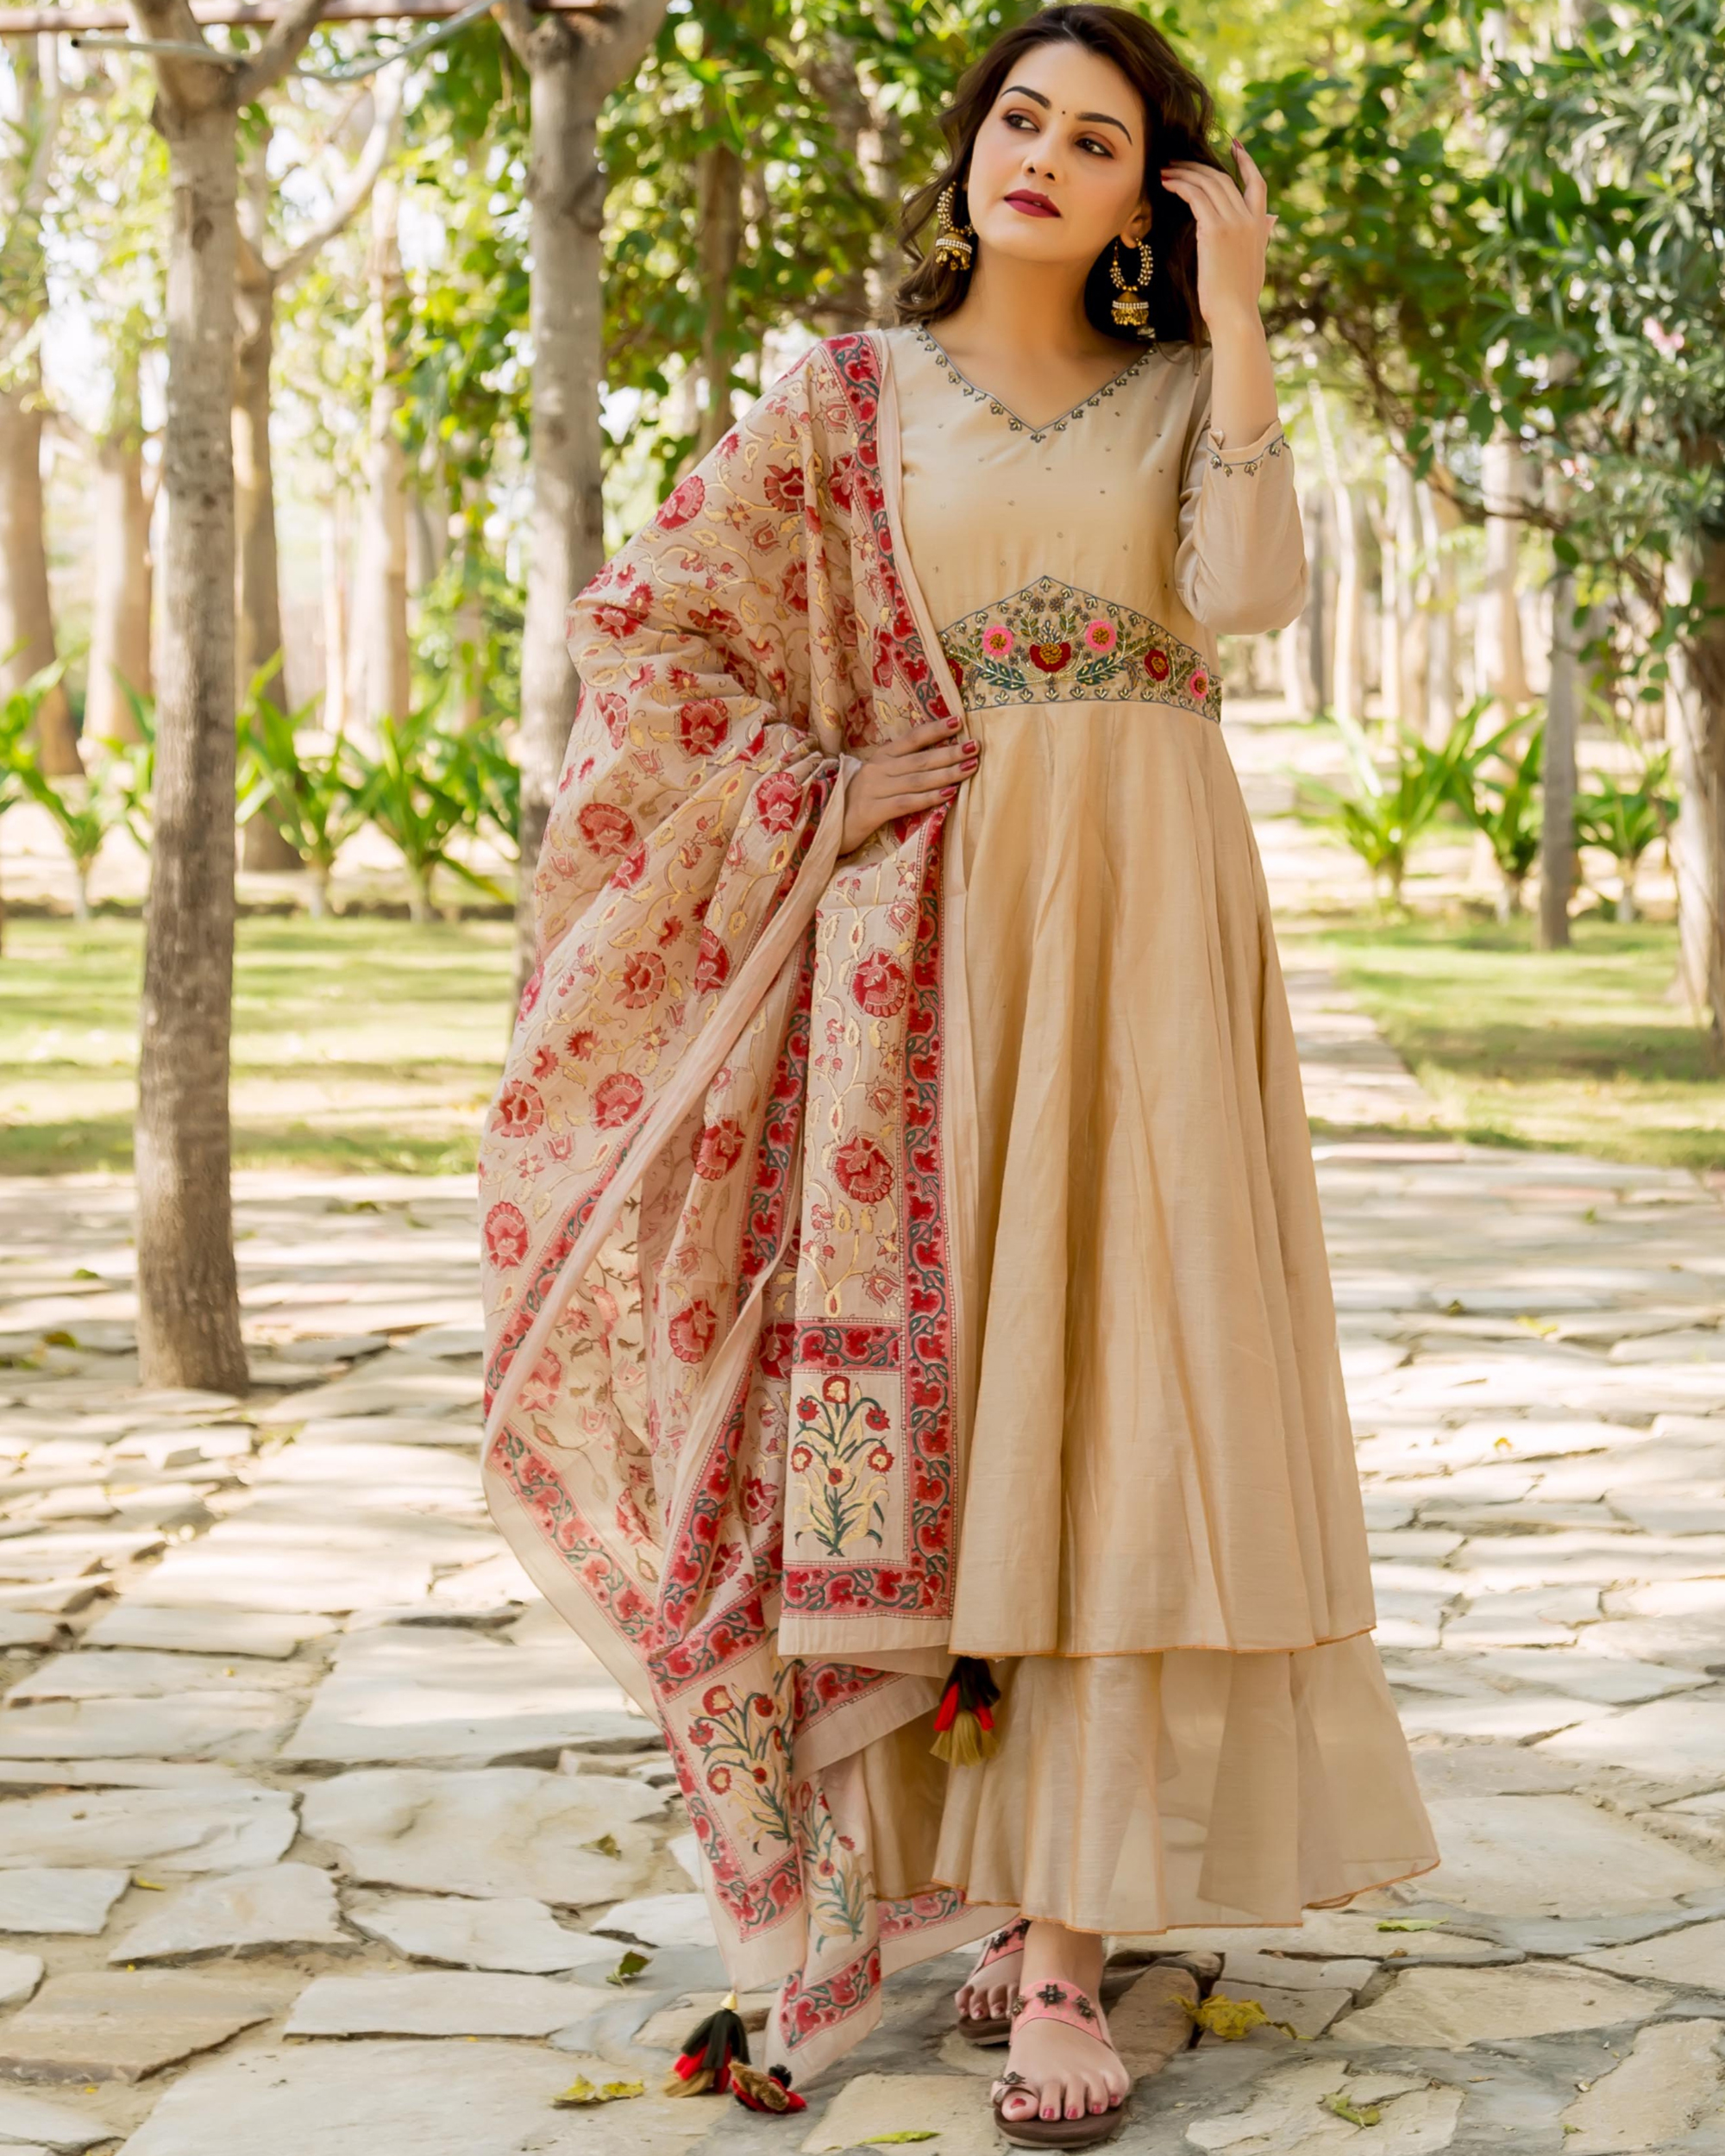 Beige hand embroidered layered kurta with dupatta - set of two